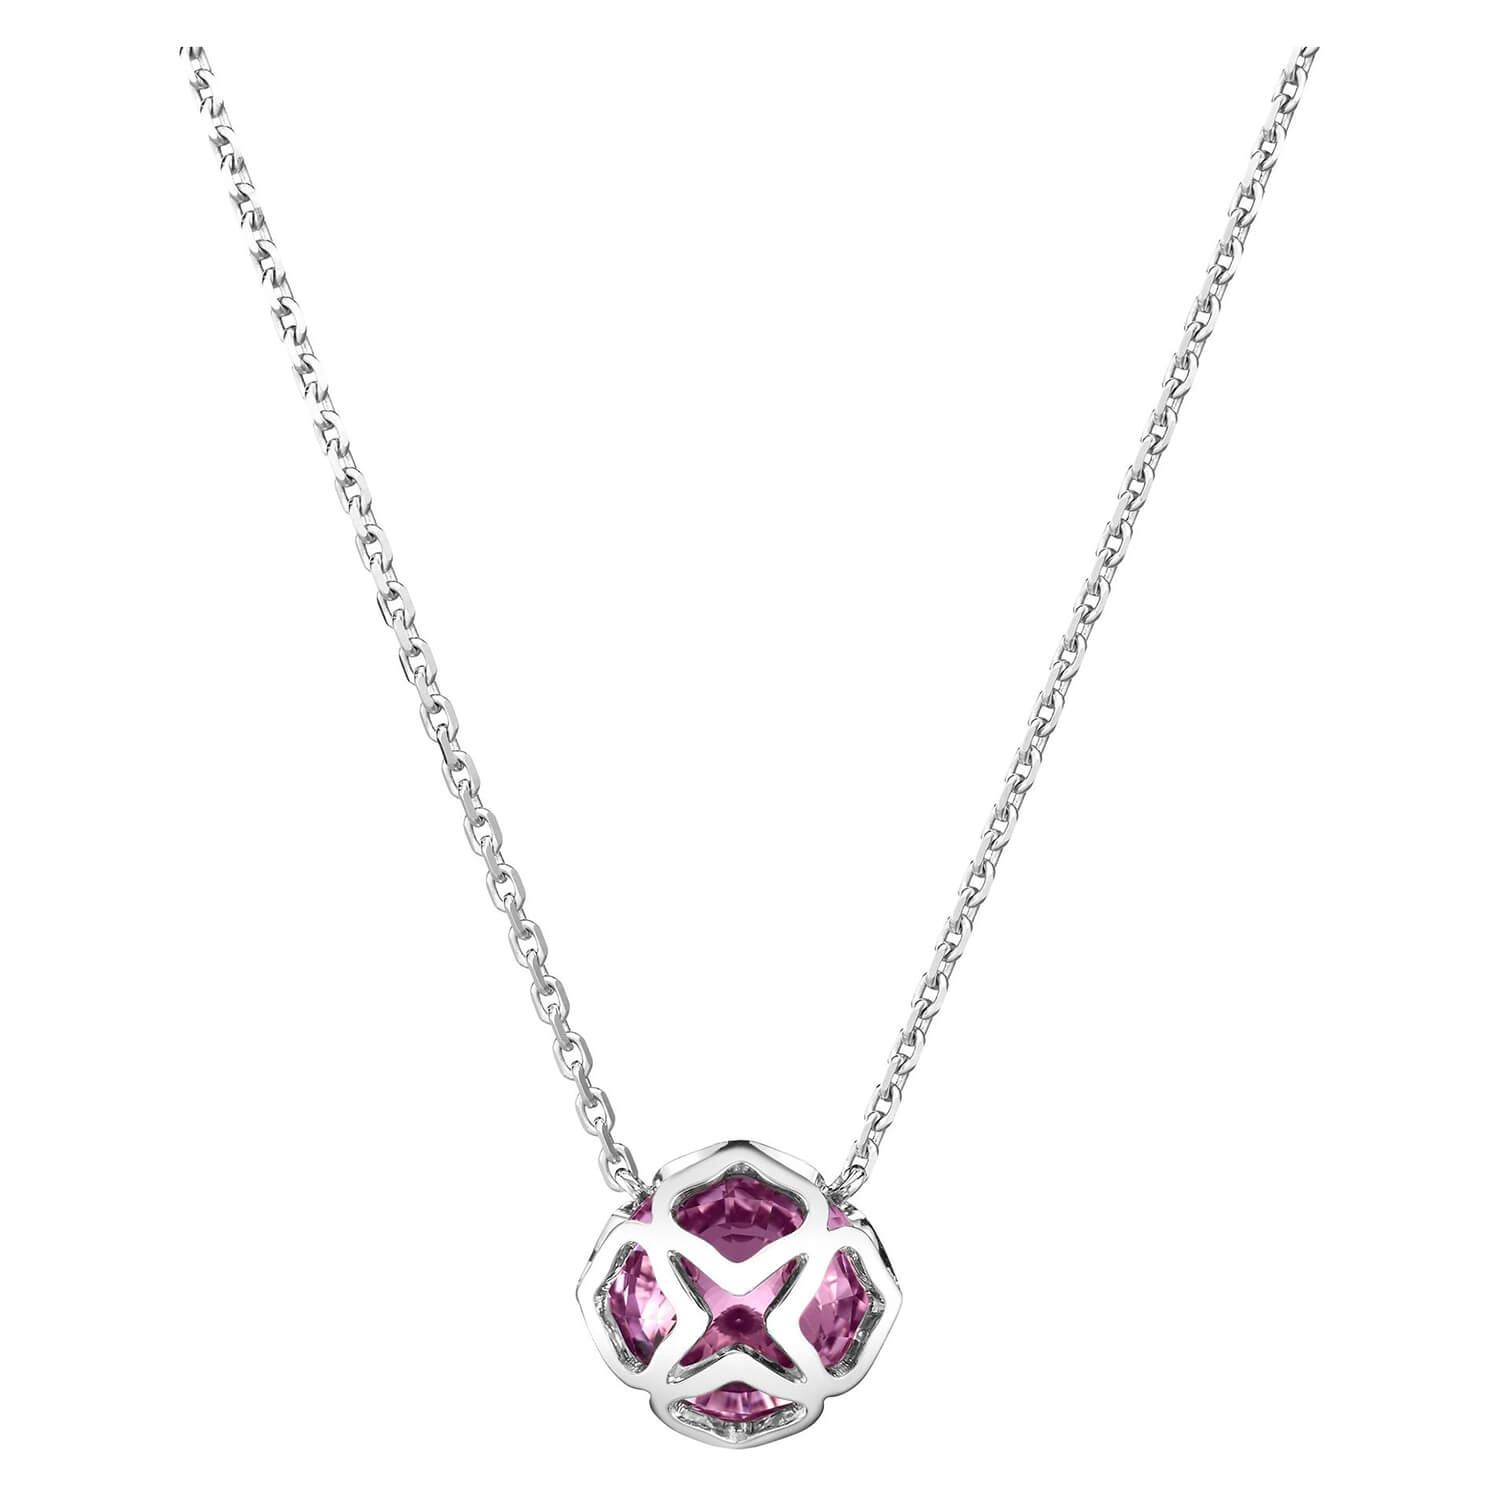 Chopard Imperial 18ct White Gold Amy Small Necklace